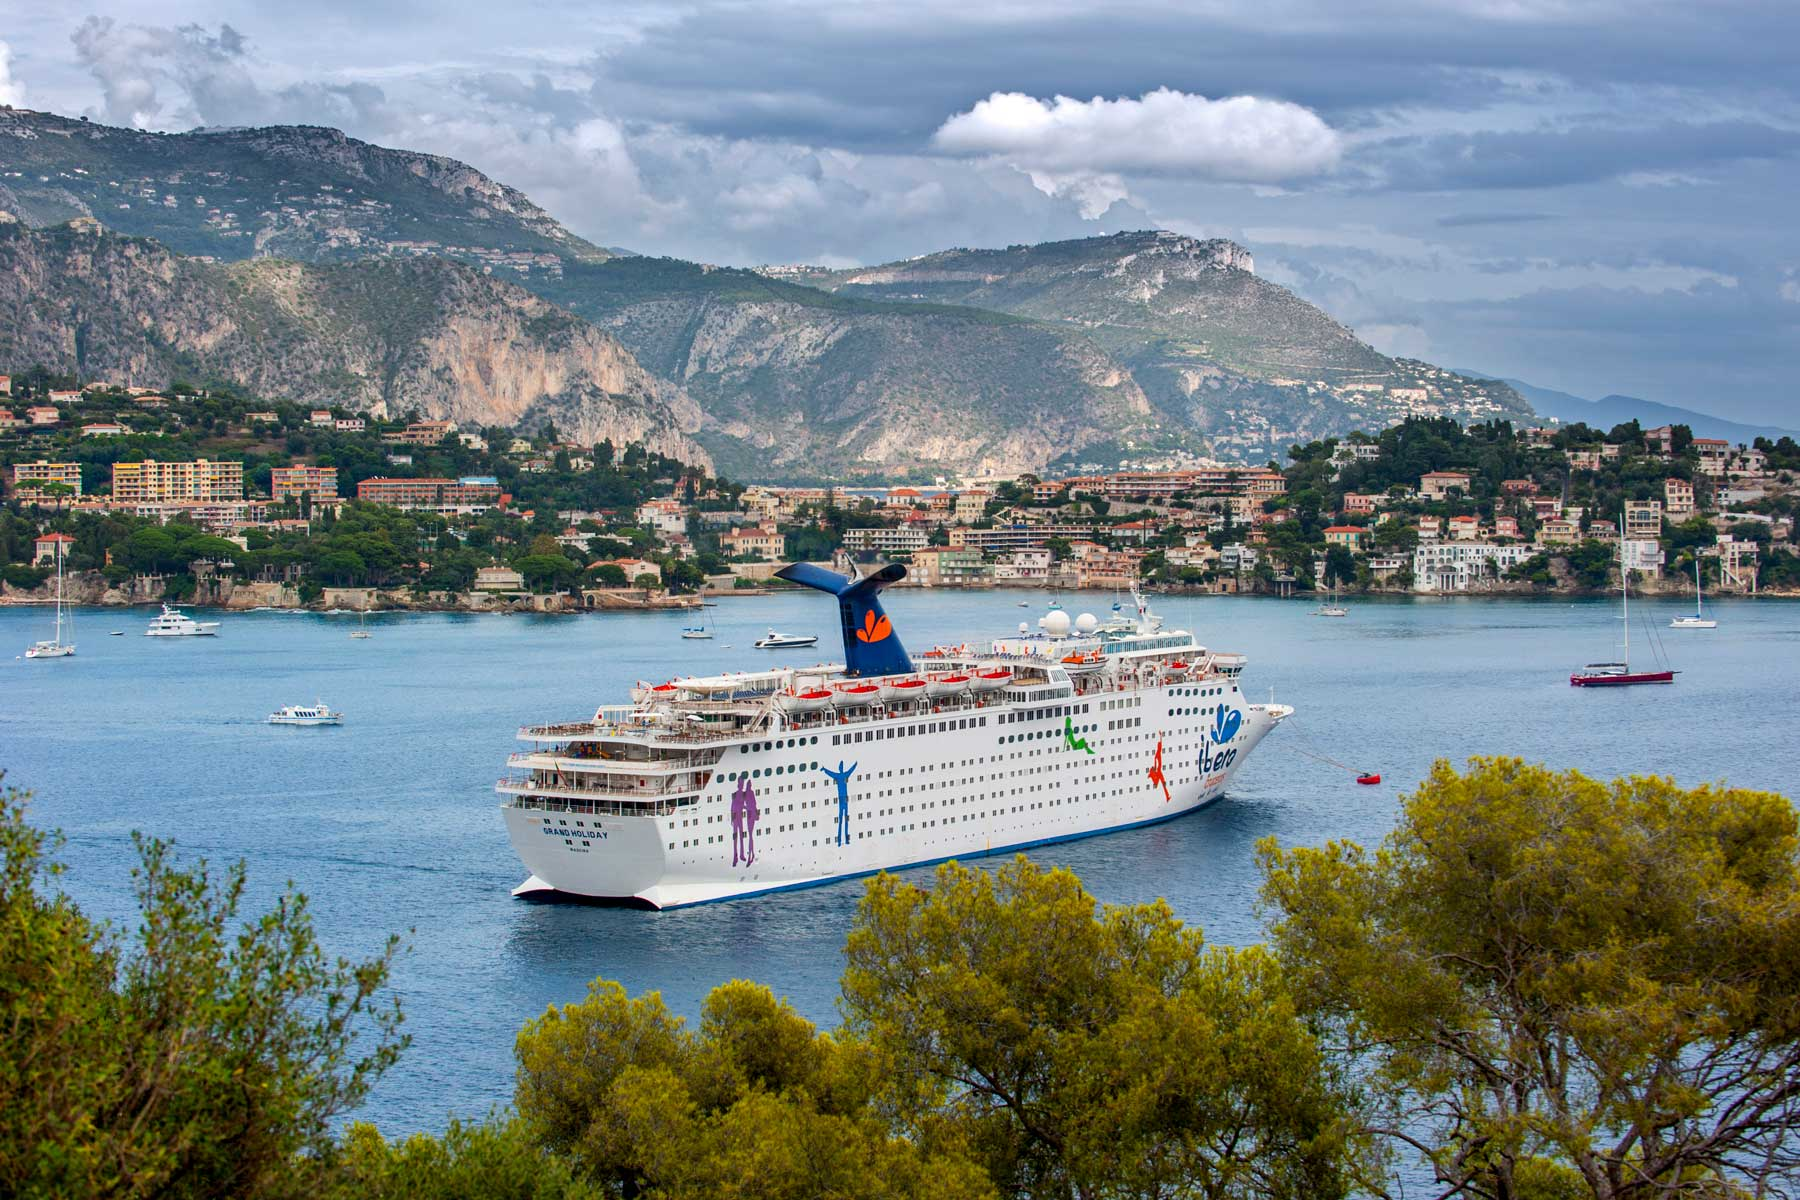 The cruise ship MS Grand Holiday of Carnival Cruise Lines docked in Nice along the French Riviera